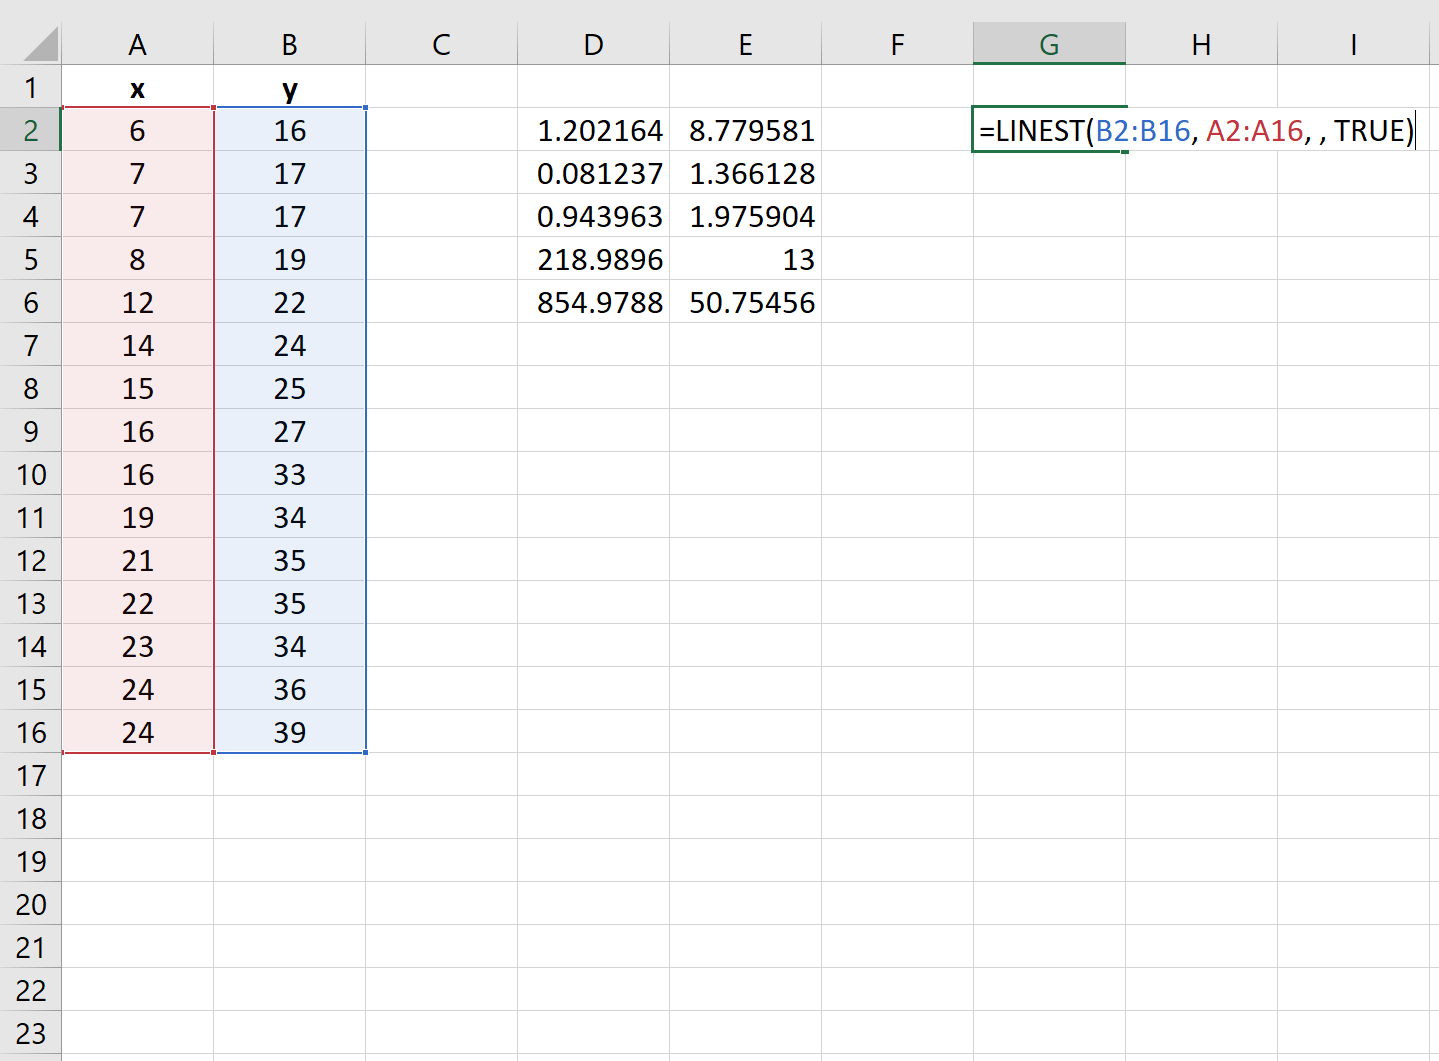 Residual sum of squares in Excel